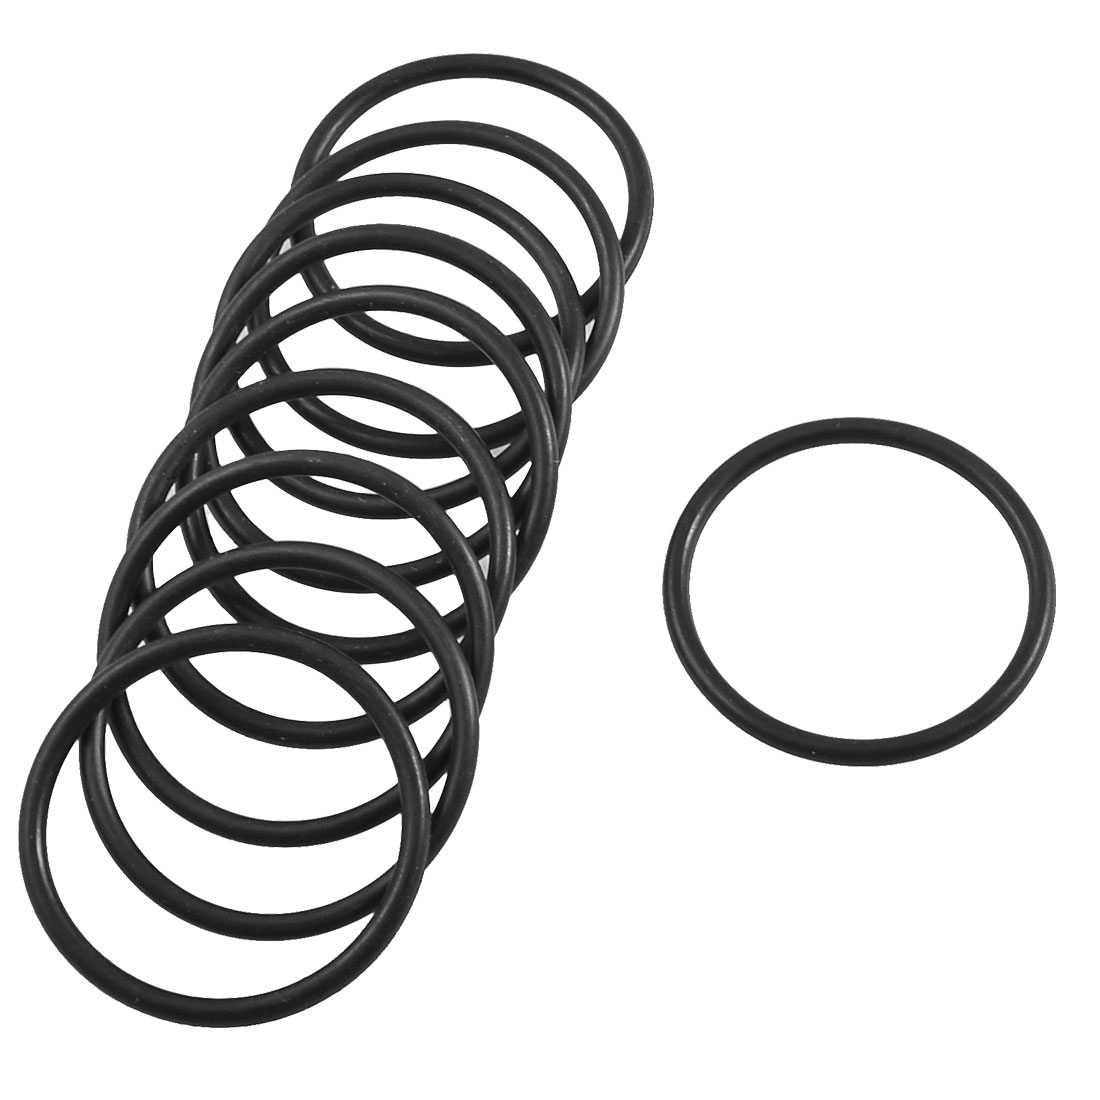 10 Pcs 44mm x 36.9mm x 3.1mm Mechanical Black Rubber O Ring Oil Seal Gaskets